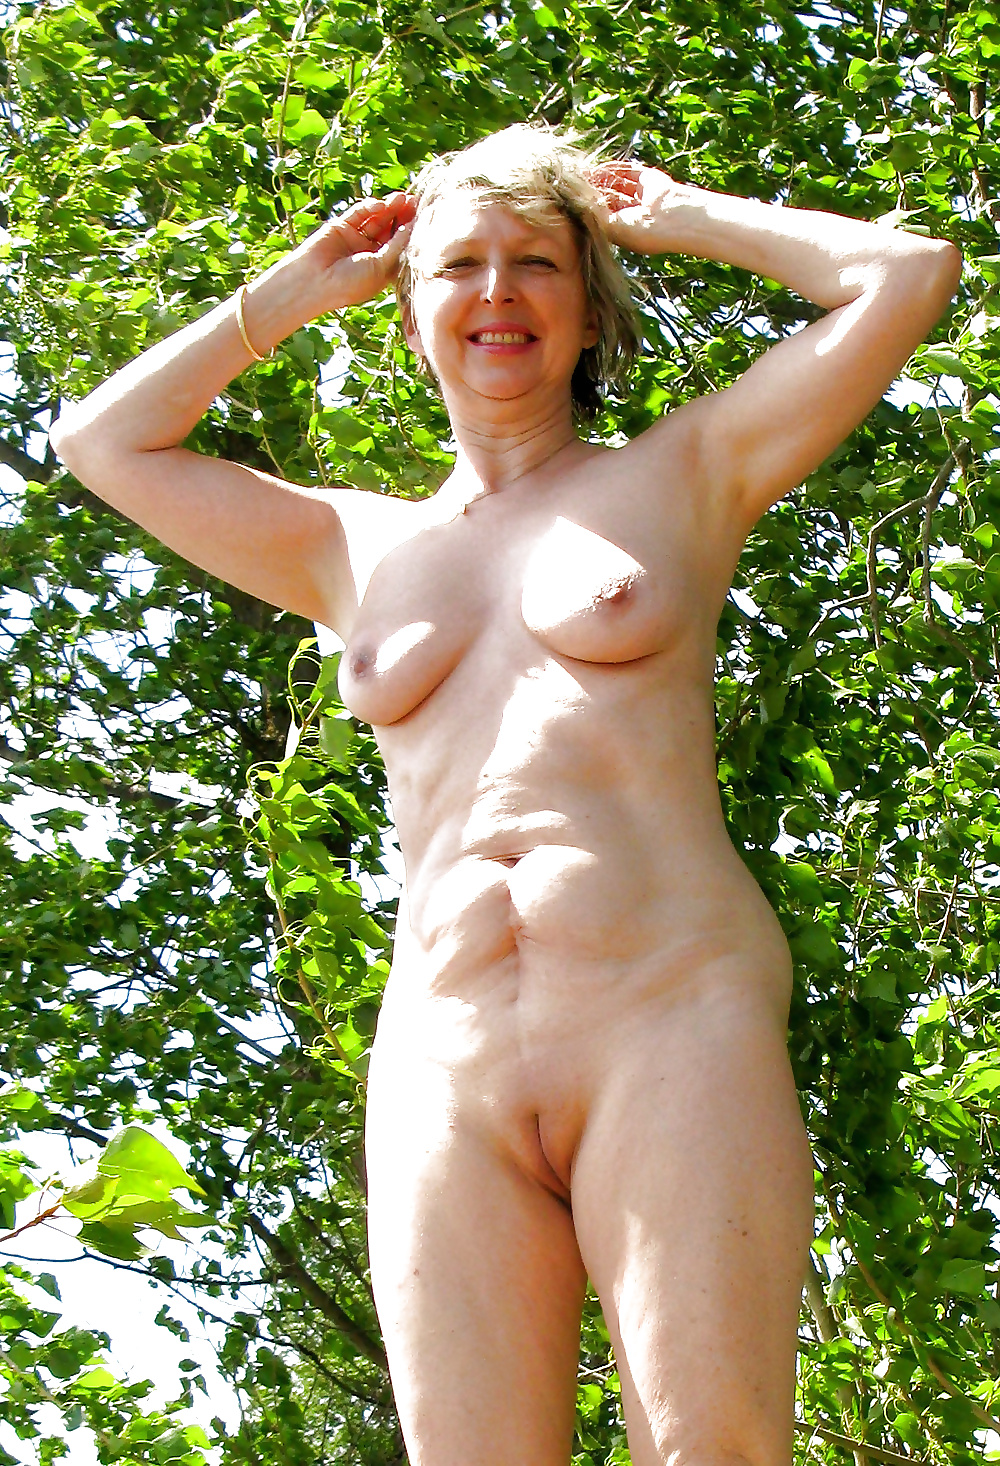 Naked mom in nature